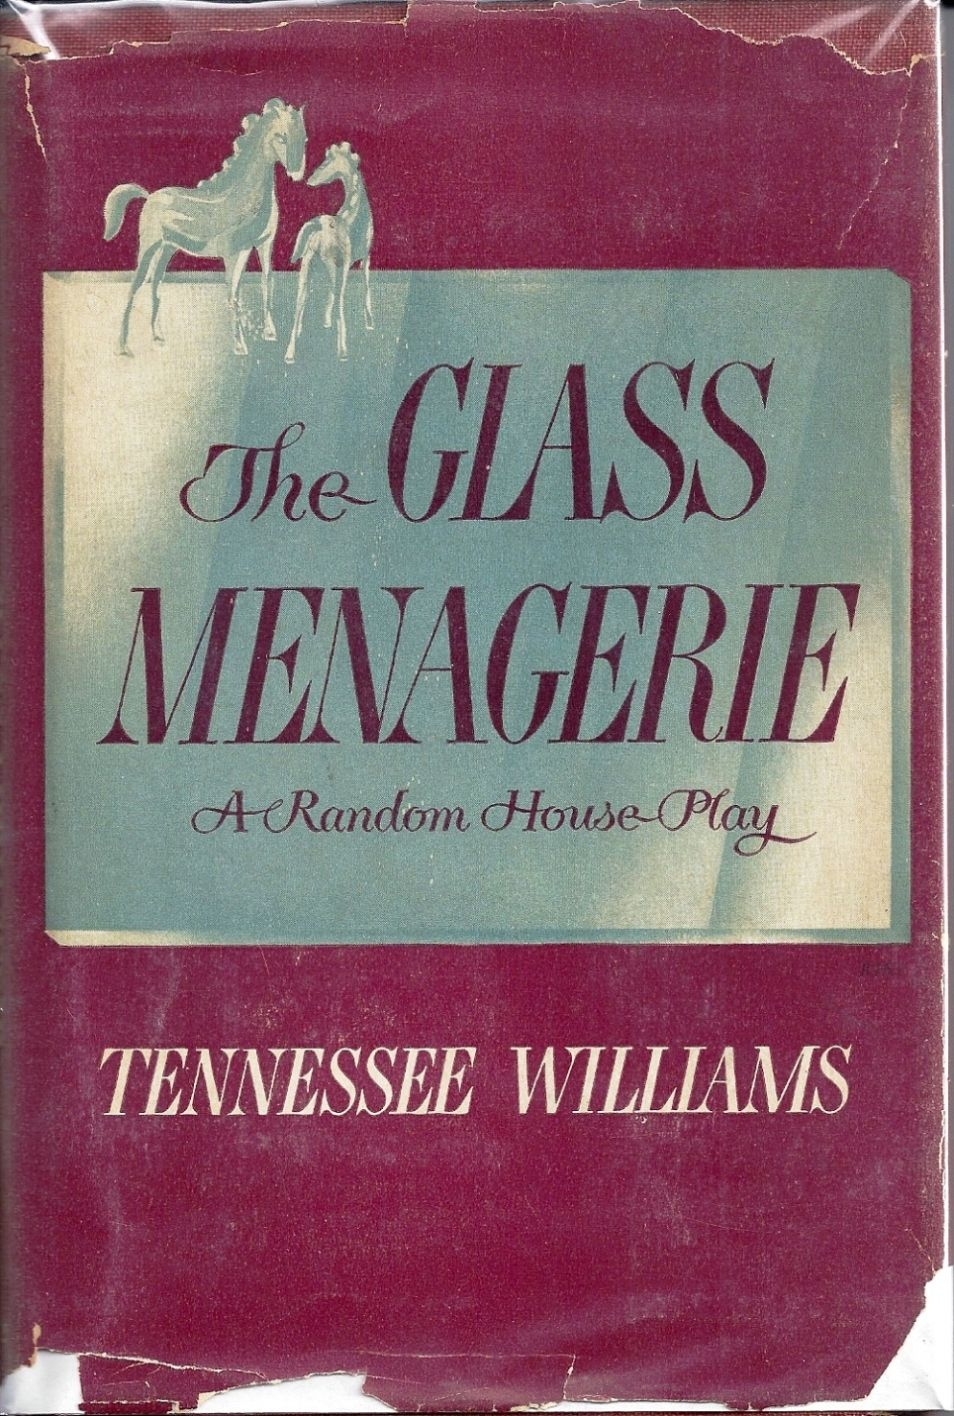 the search for happiness in the glass menagerie by tennessee williams The glass menagerie study guide contains a biography of tennessee williams, literature essays, quiz questions, major themes, characters, and a full summary and analysis.